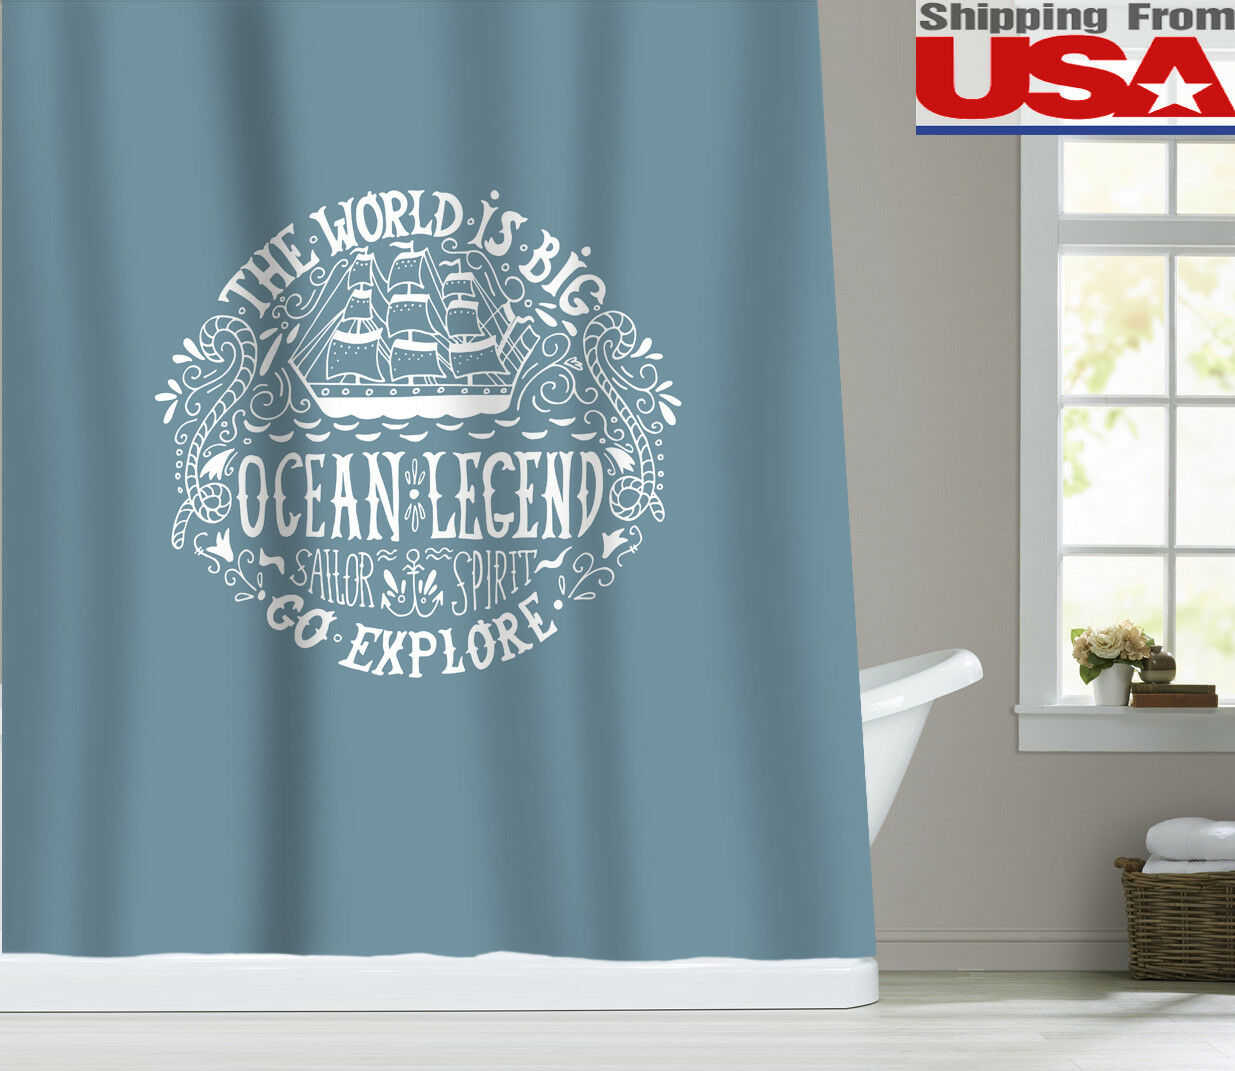 Sunlit Oecan Quotes Waterproof Fabric Shower Curtain Bathroom 12hooks 72x72